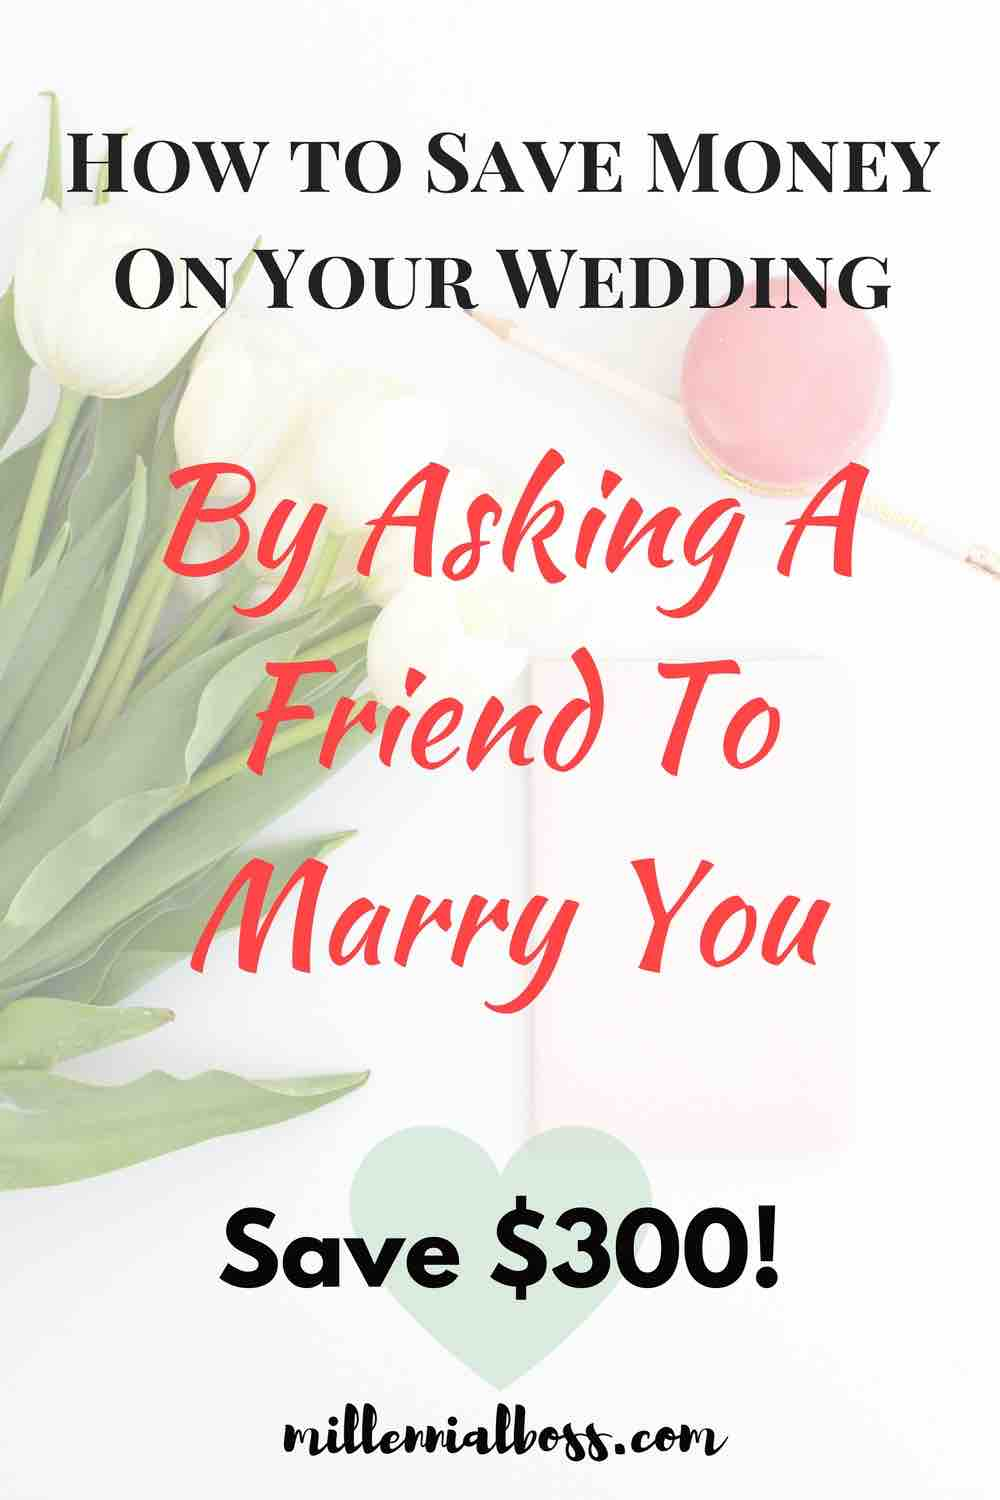 ask friend or family member to marry you and be your officiant